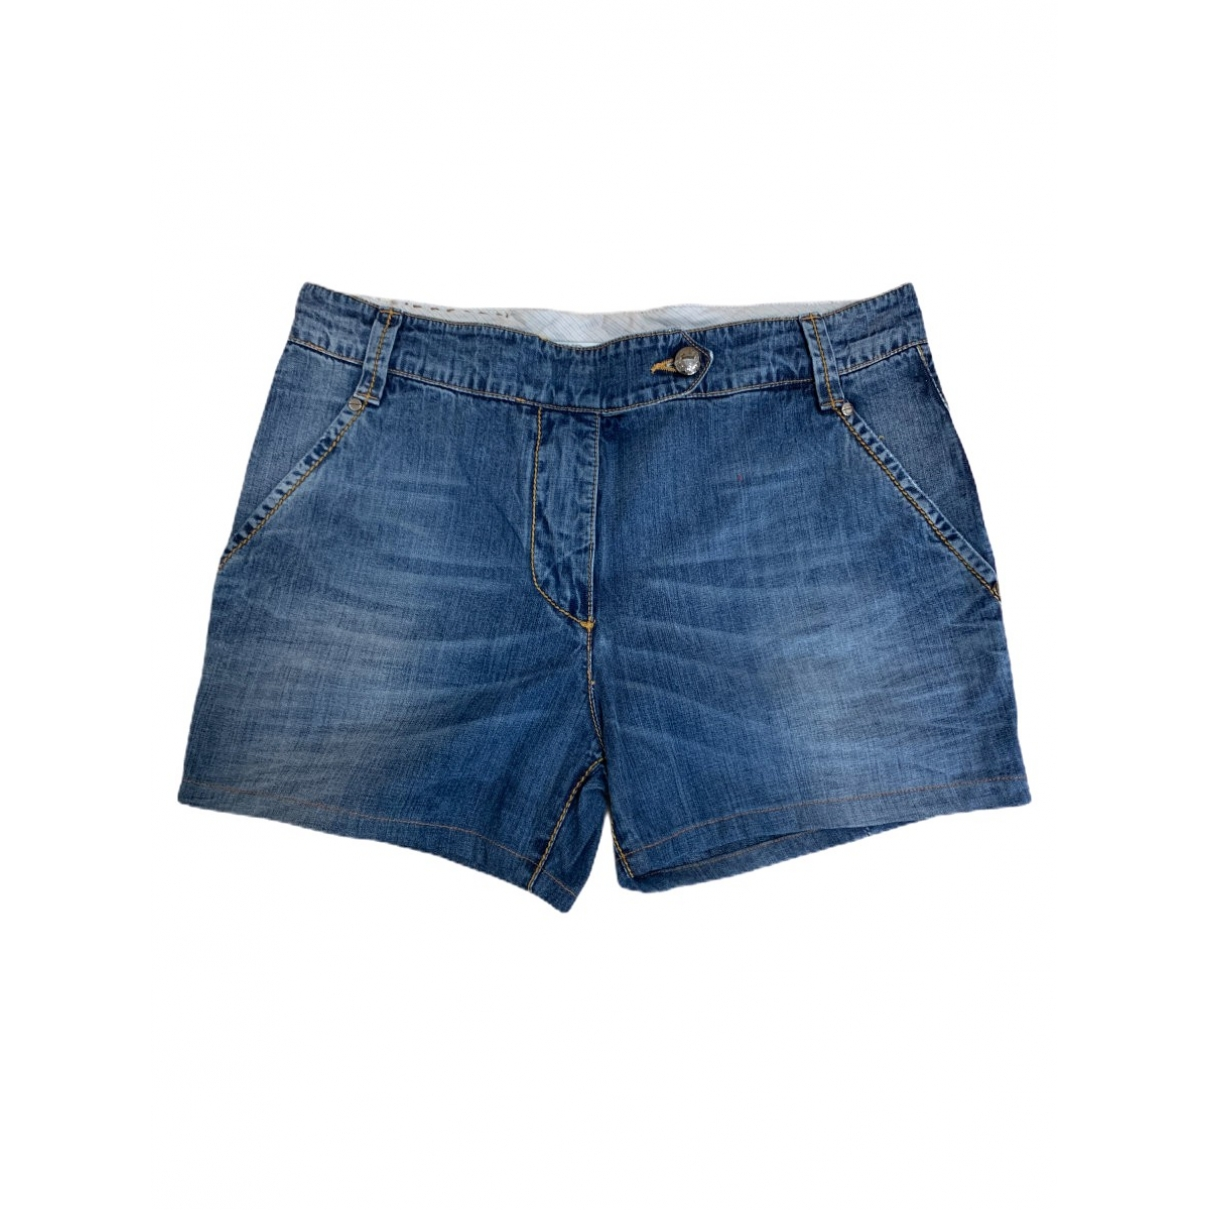 Ermanno Scervino \N Blue Denim - Jeans Shorts for Women 40 IT